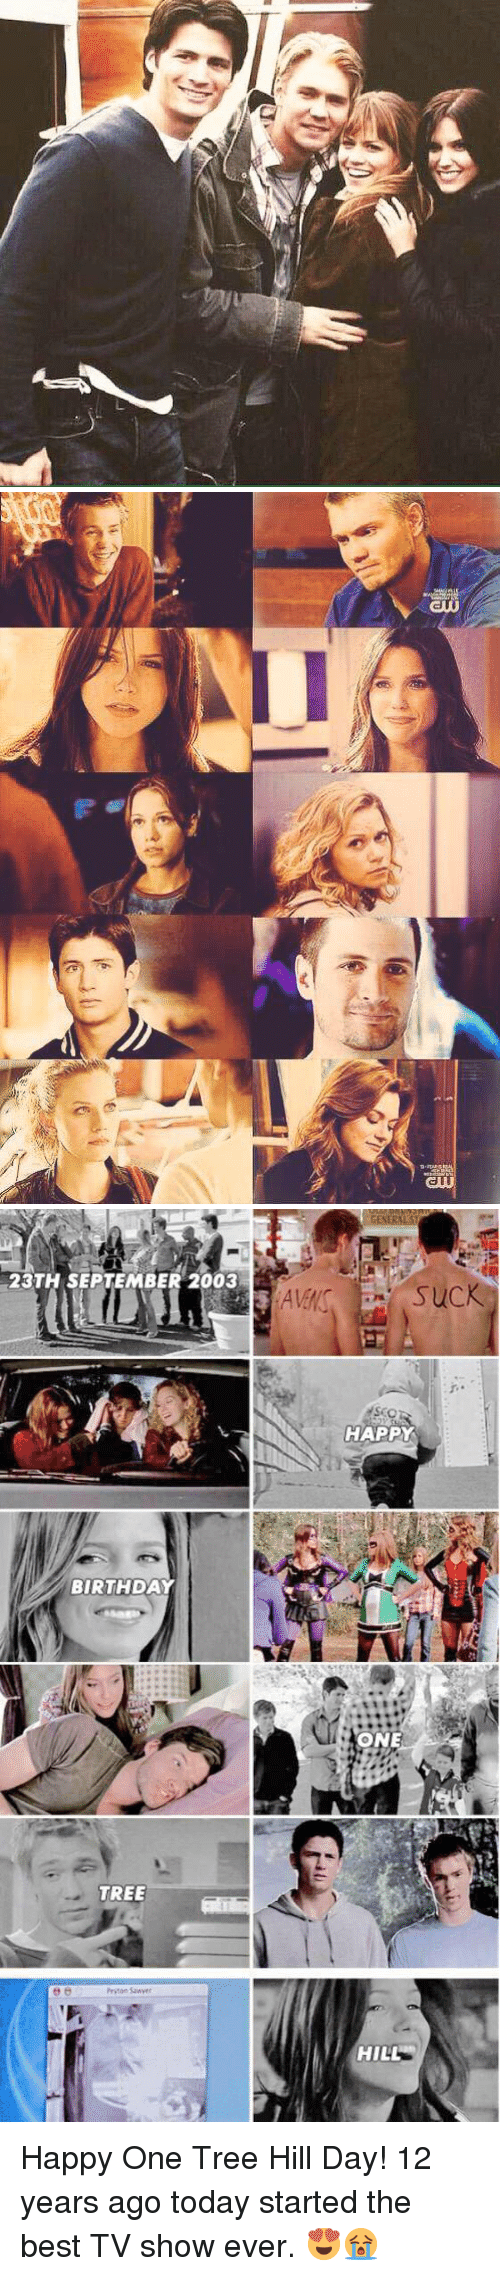 One Tree Hill: 逼看  o   ew   23TH SEPTEMBER 2003  BIRTHDAY  TREE  GENERAL ST  suCK  HAPPY  ONE  HILL Happy One Tree Hill Day! 12 years ago today started the best TV show ever. 😍😭